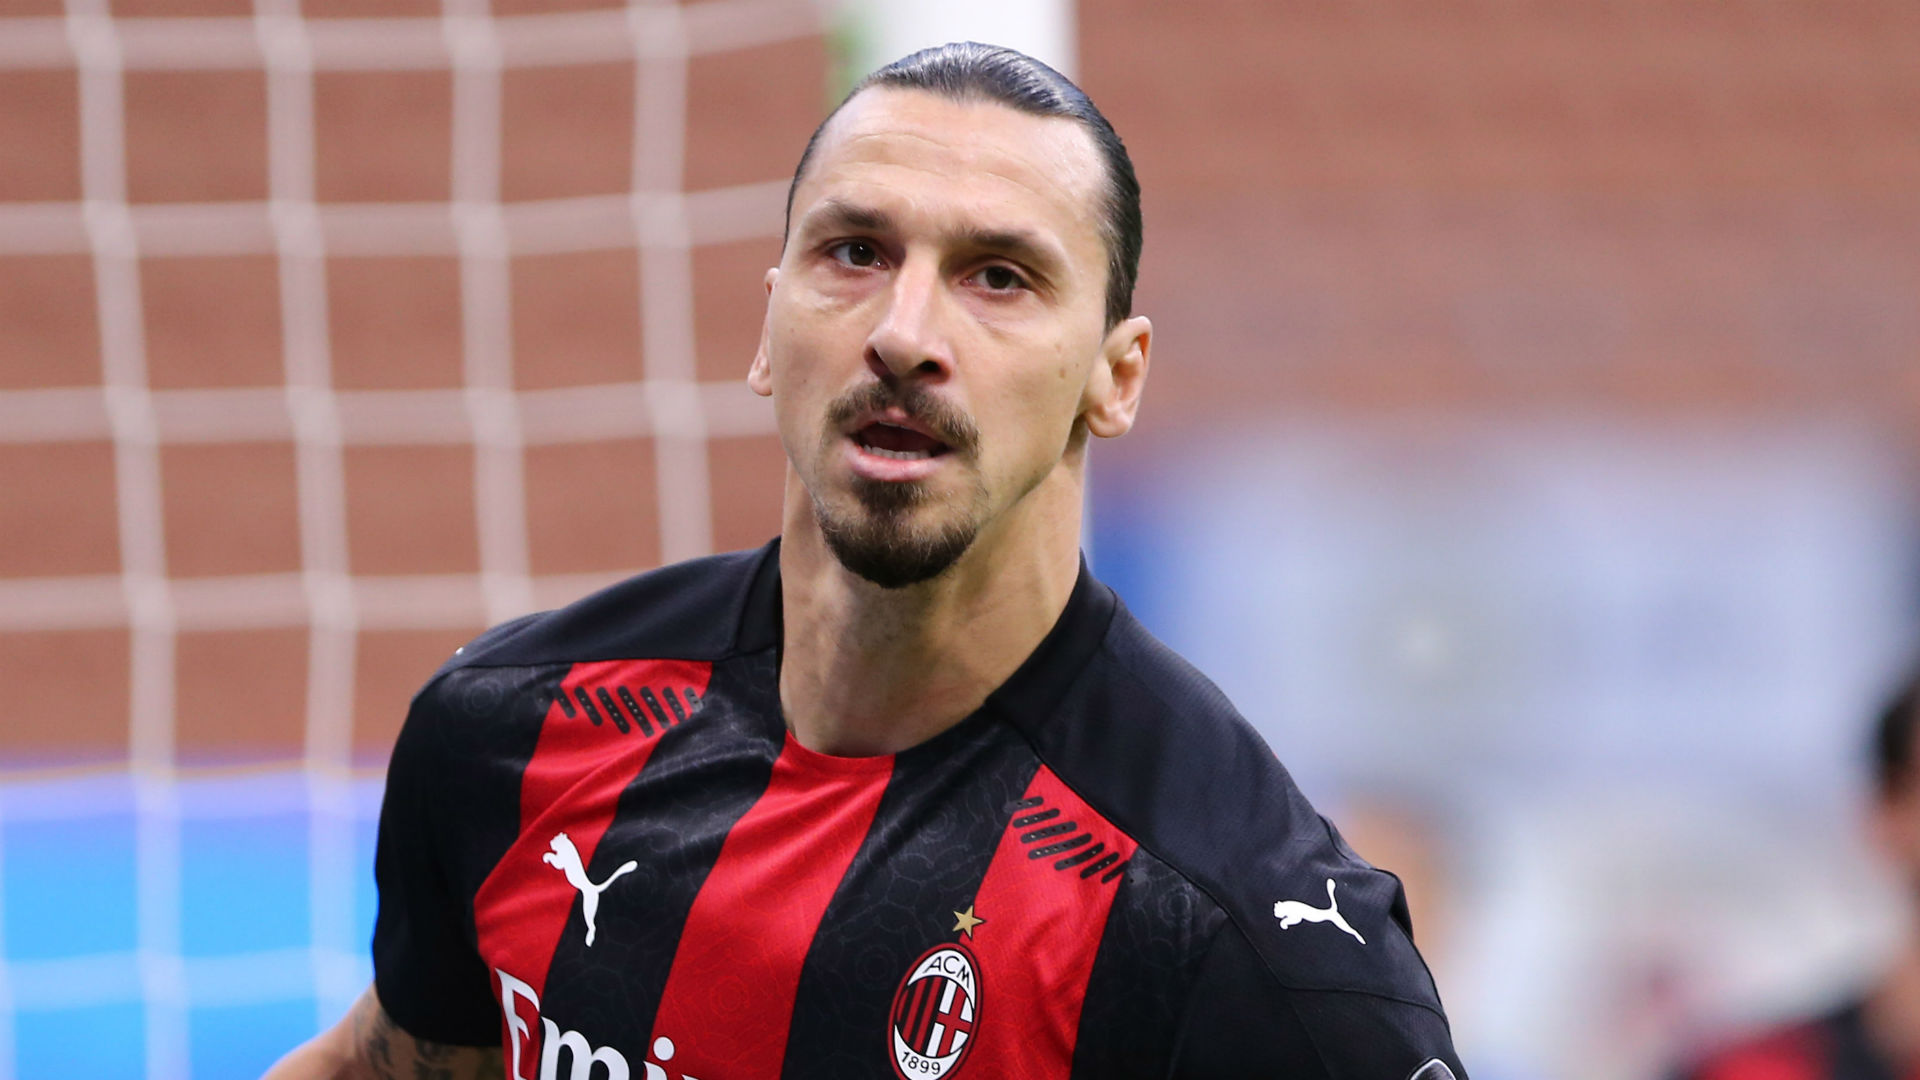 Ibrahimovic was in need of a rest, says Milan assistant Bonera